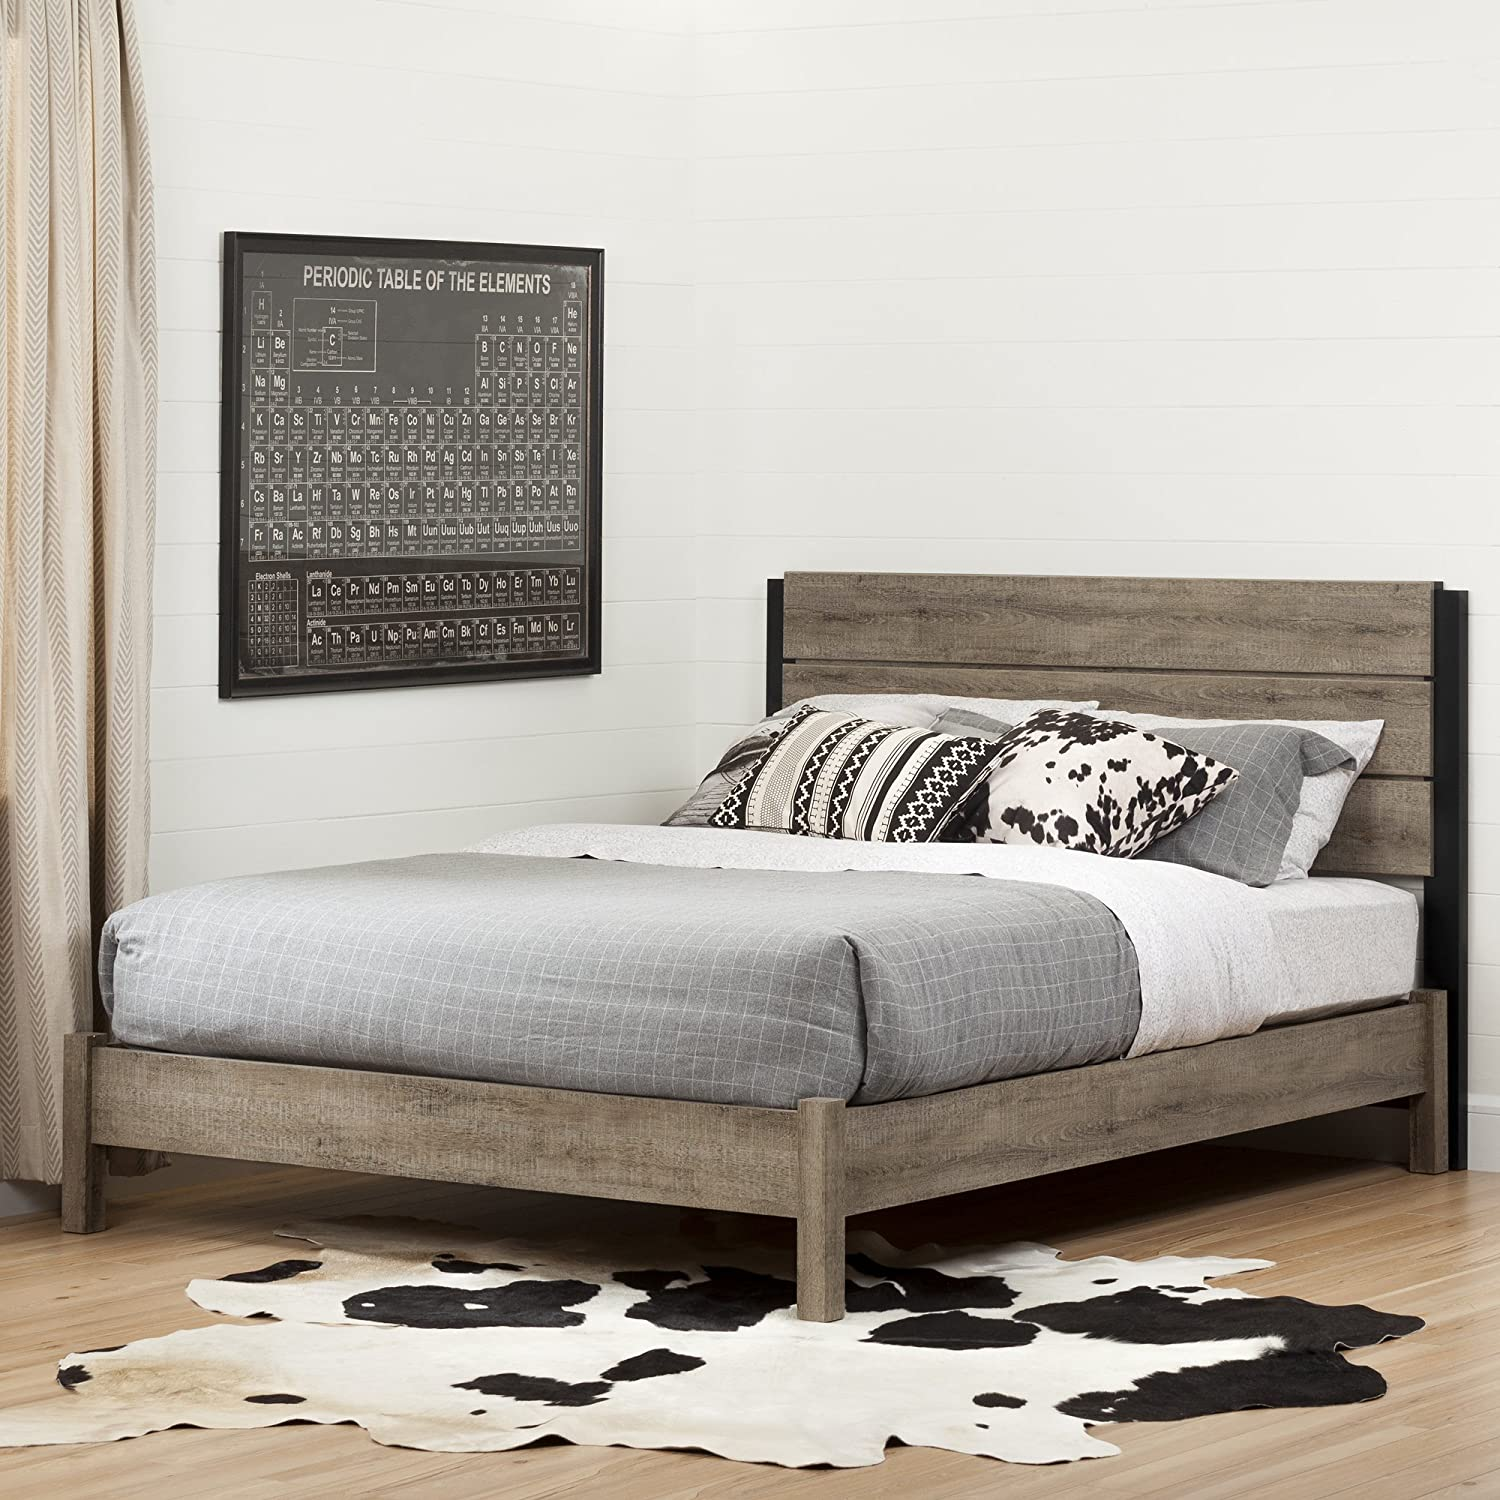 Amazon South Shore Munich Platform Bed 60 on Legs Weathered